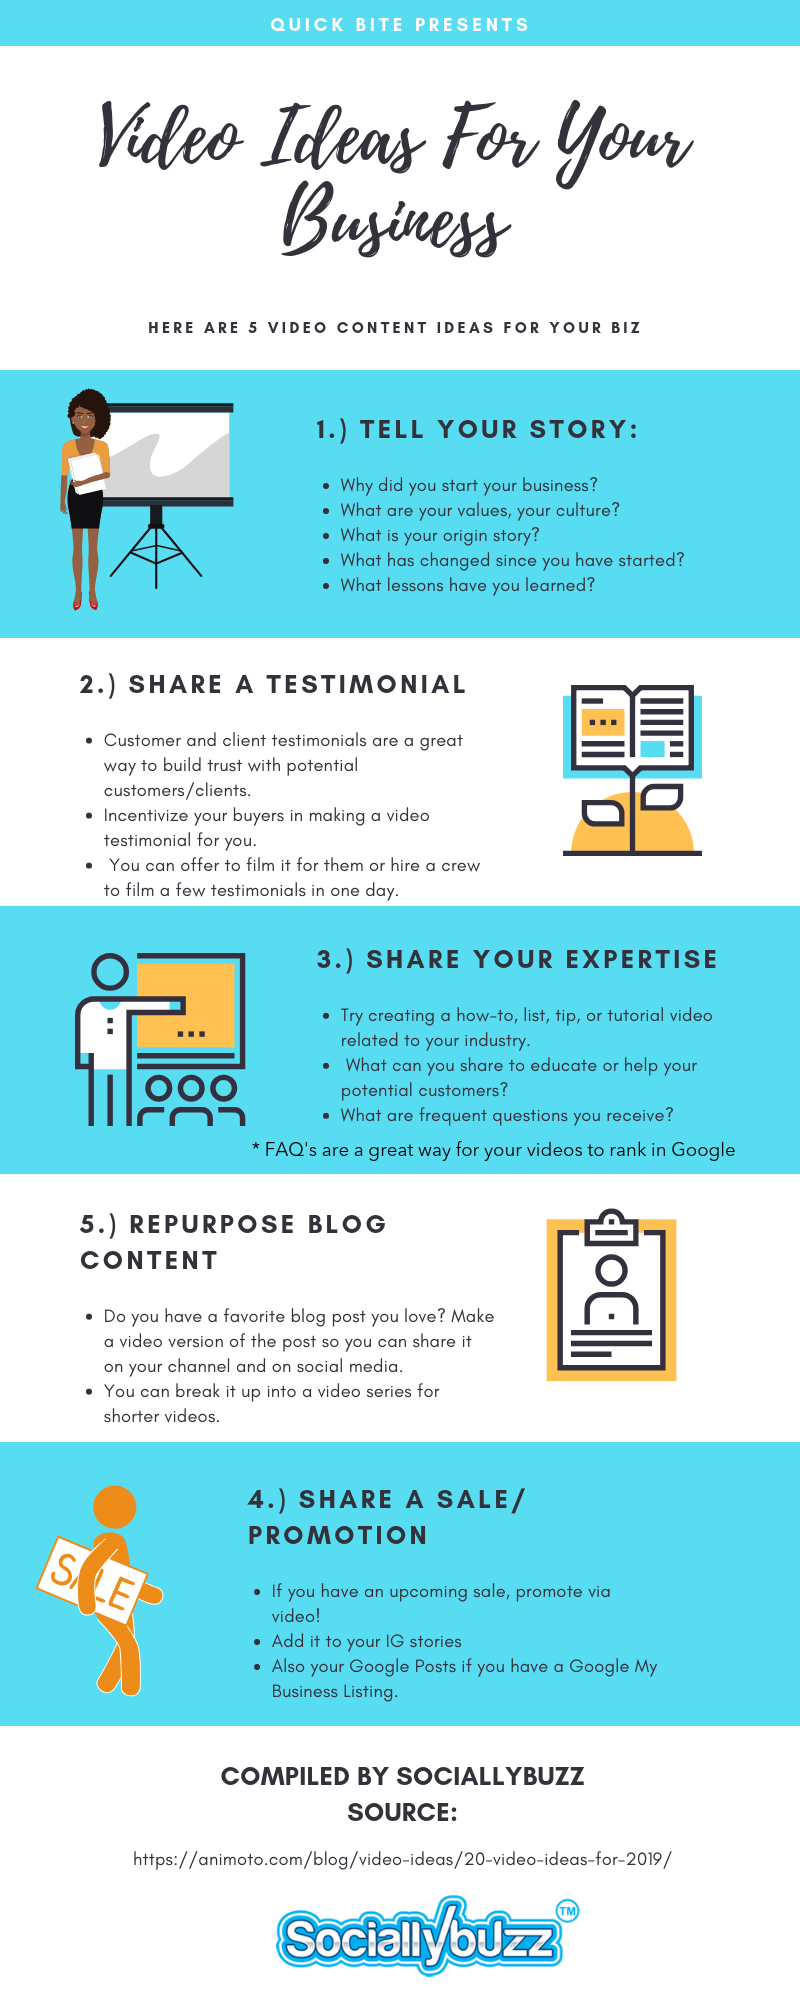 Video tips for your Small Business